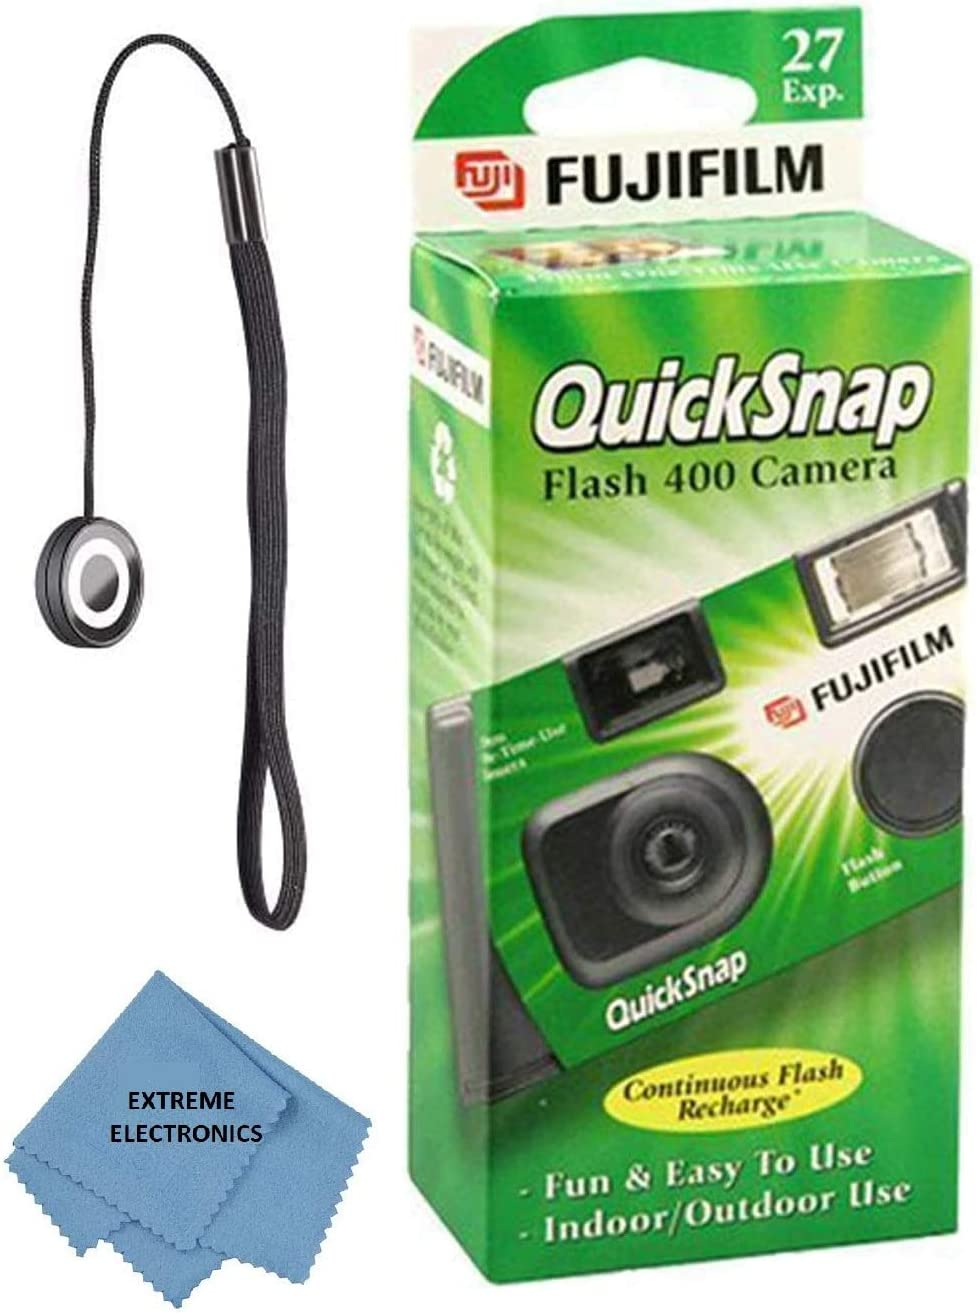 'Quicksnap Flash New arrival 400 Single-Use Flash' Over item handling with Camera